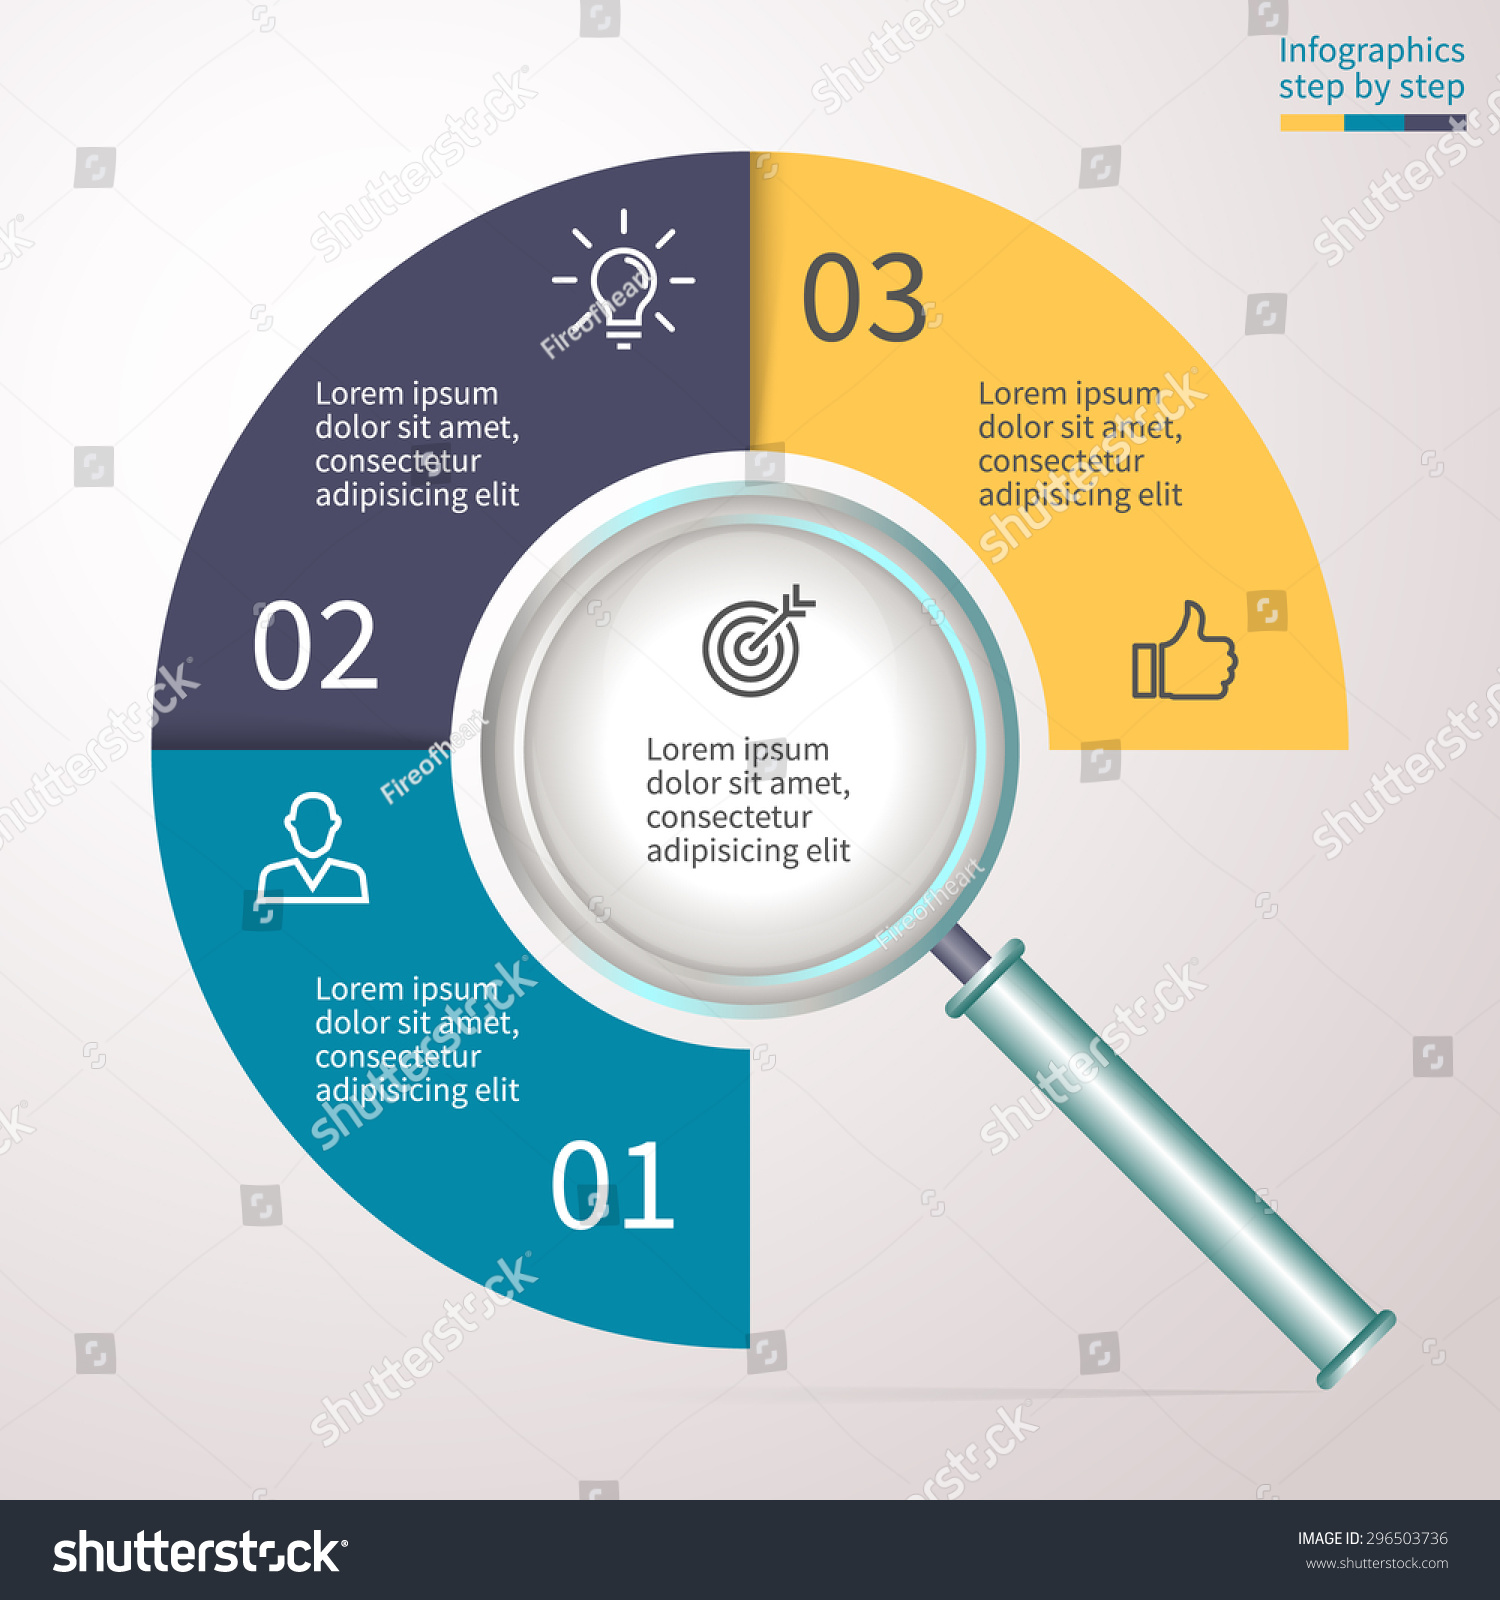 pest analysis of siemens Siemens ag pestle analysispolitical factorssiemens ag will be subject to  legislation in any country within which they are operating with the.